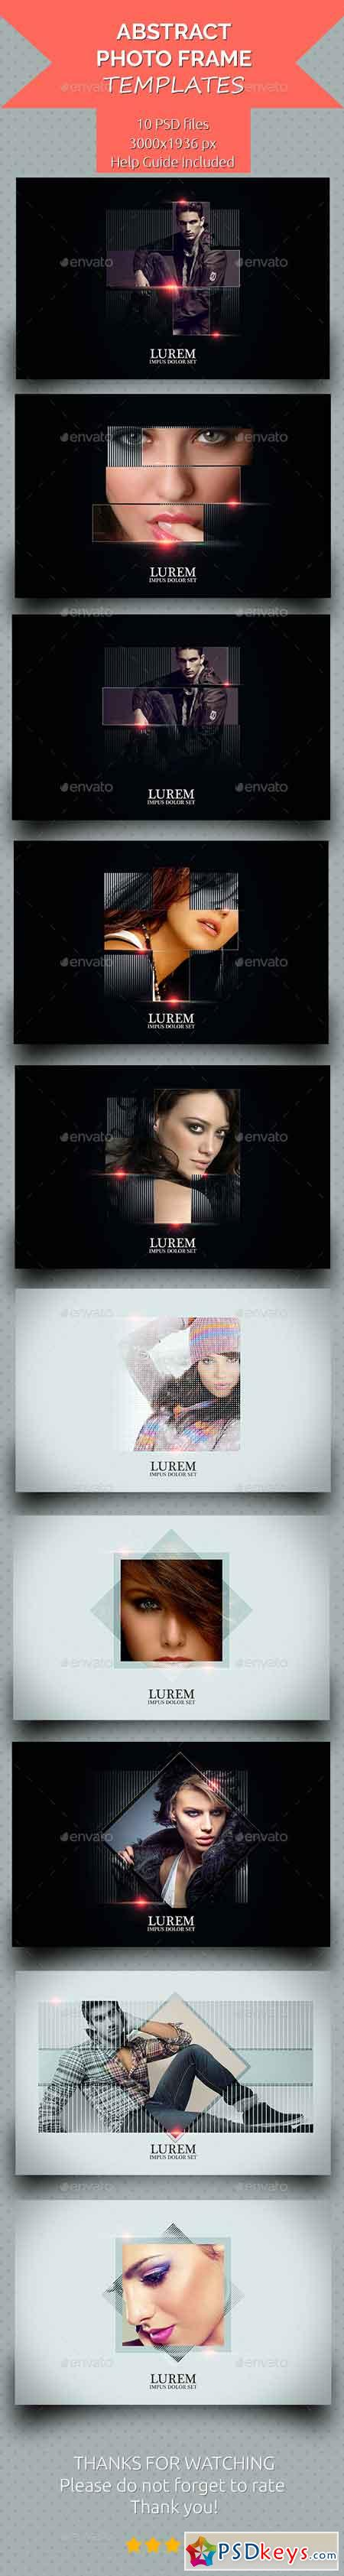 Abstract Photo Frame Templates V.2 16897247